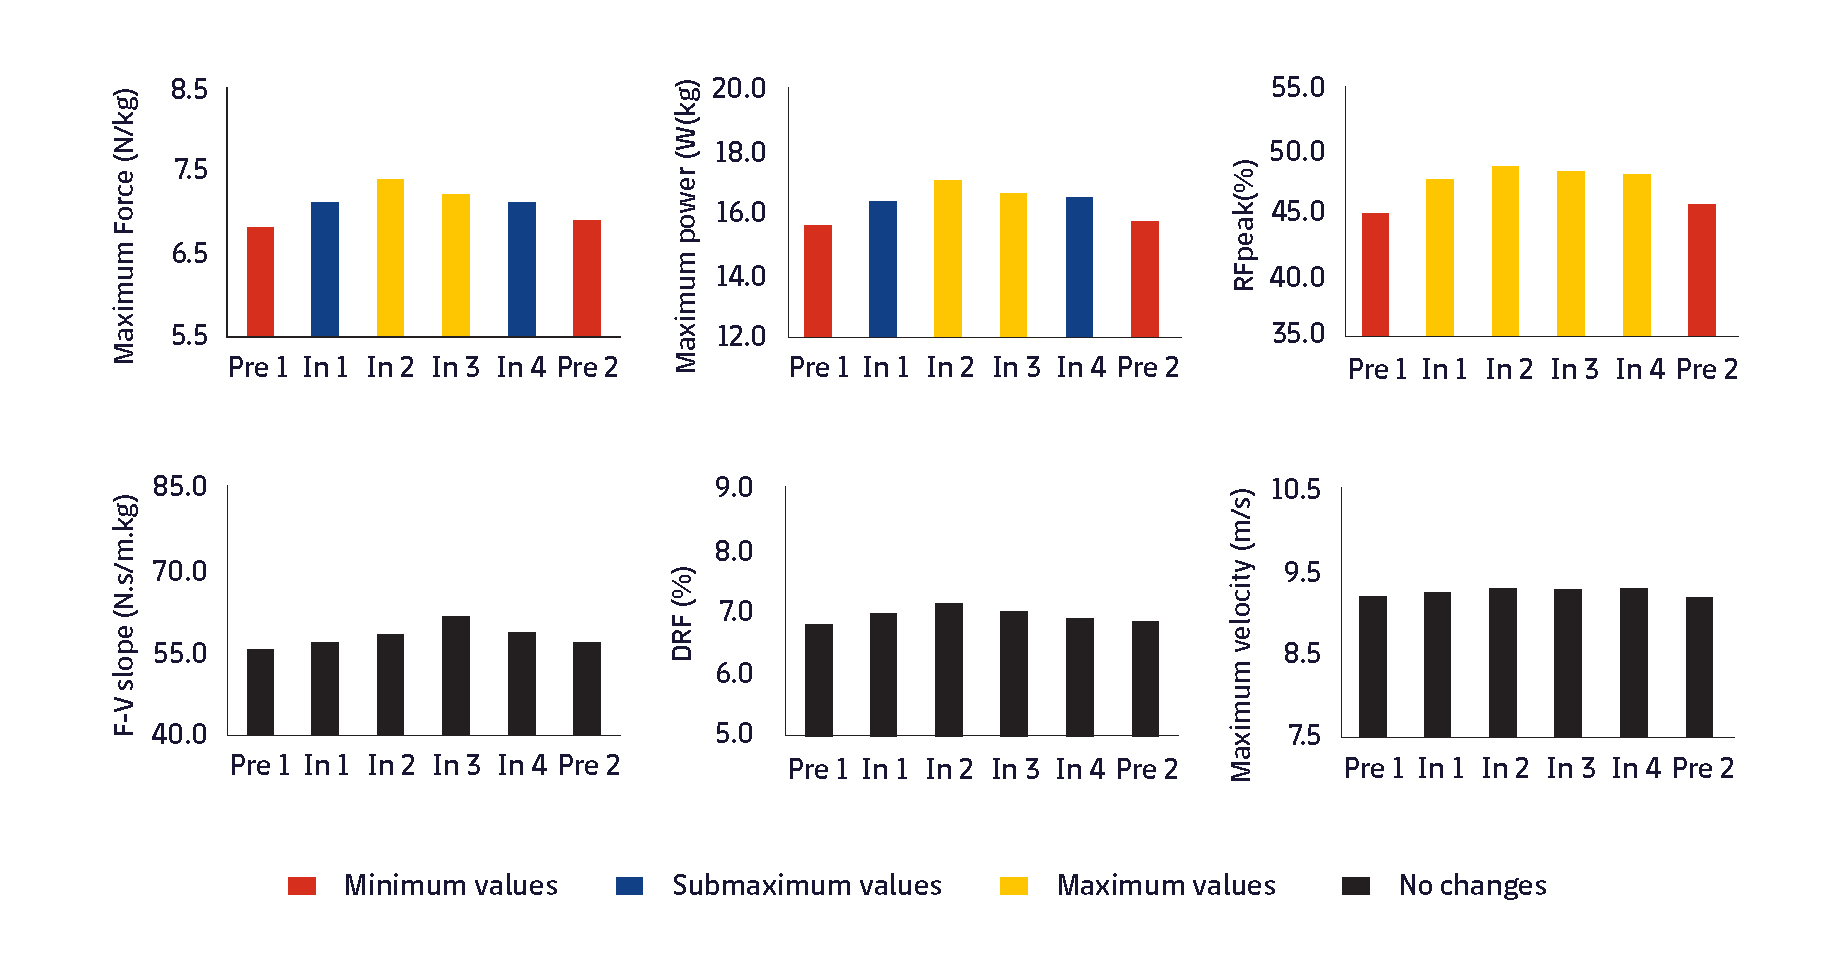 Figure 3. Evolution of the SSP profile variables for sprints during different moments of a season. Adapted from Jiménez-Reyes et al., 20206. Pre 1 and Pre 2, Preseason 1 and 2; In 1, 2, 3 and 4, Moments 1, 2, 3 and 4 within the season.